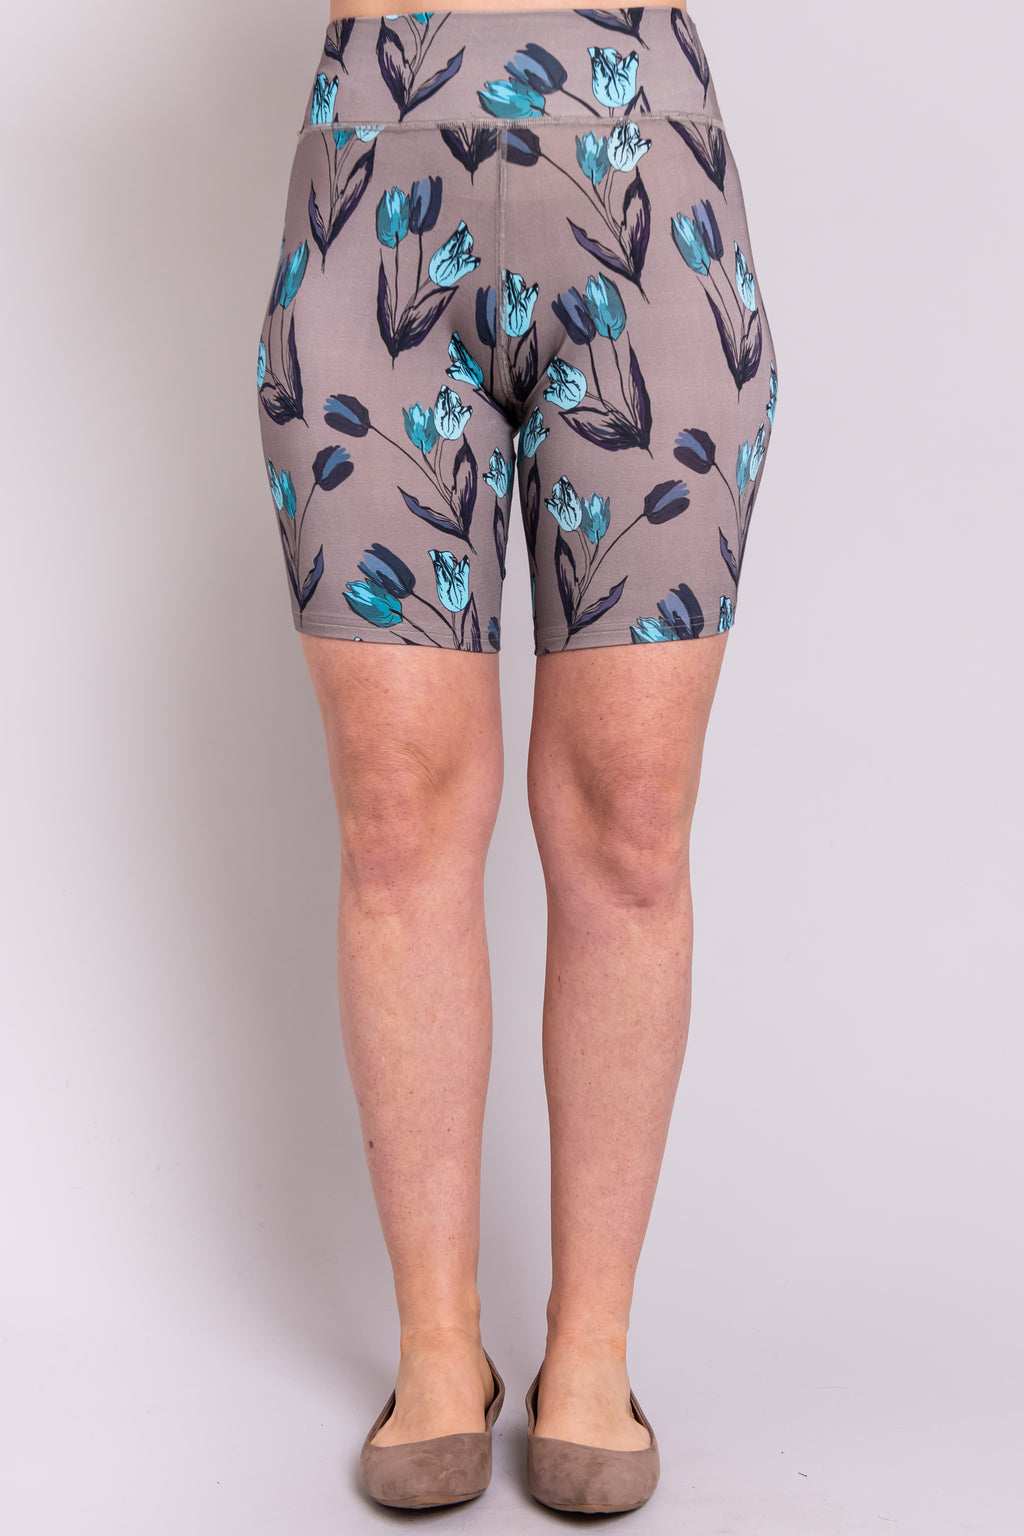 Hallie, Teal Tulips, Bamboo - Blue Sky Clothing Co